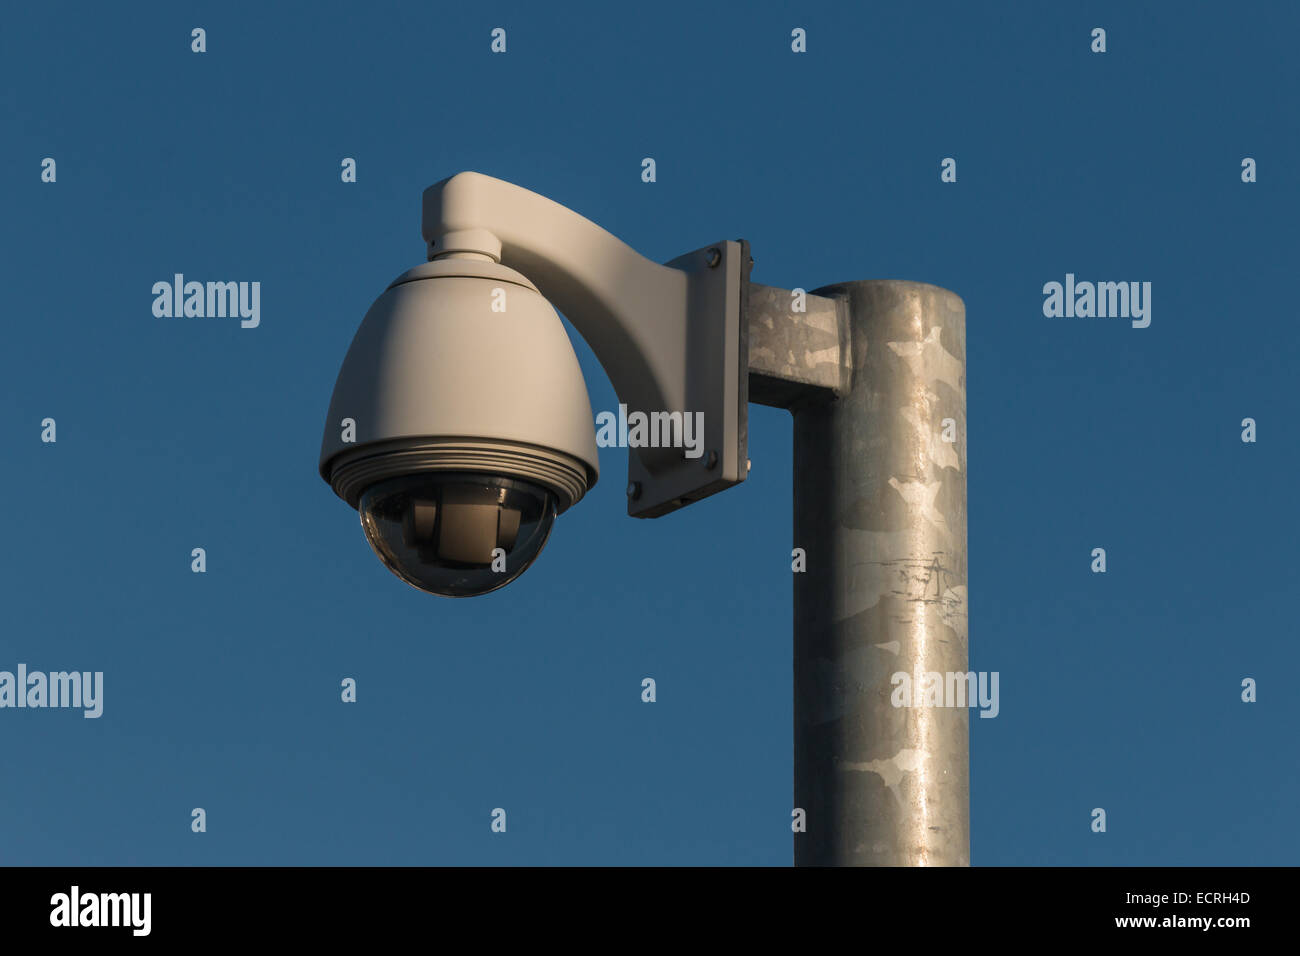 dome camera mounted on pole - Stock Image